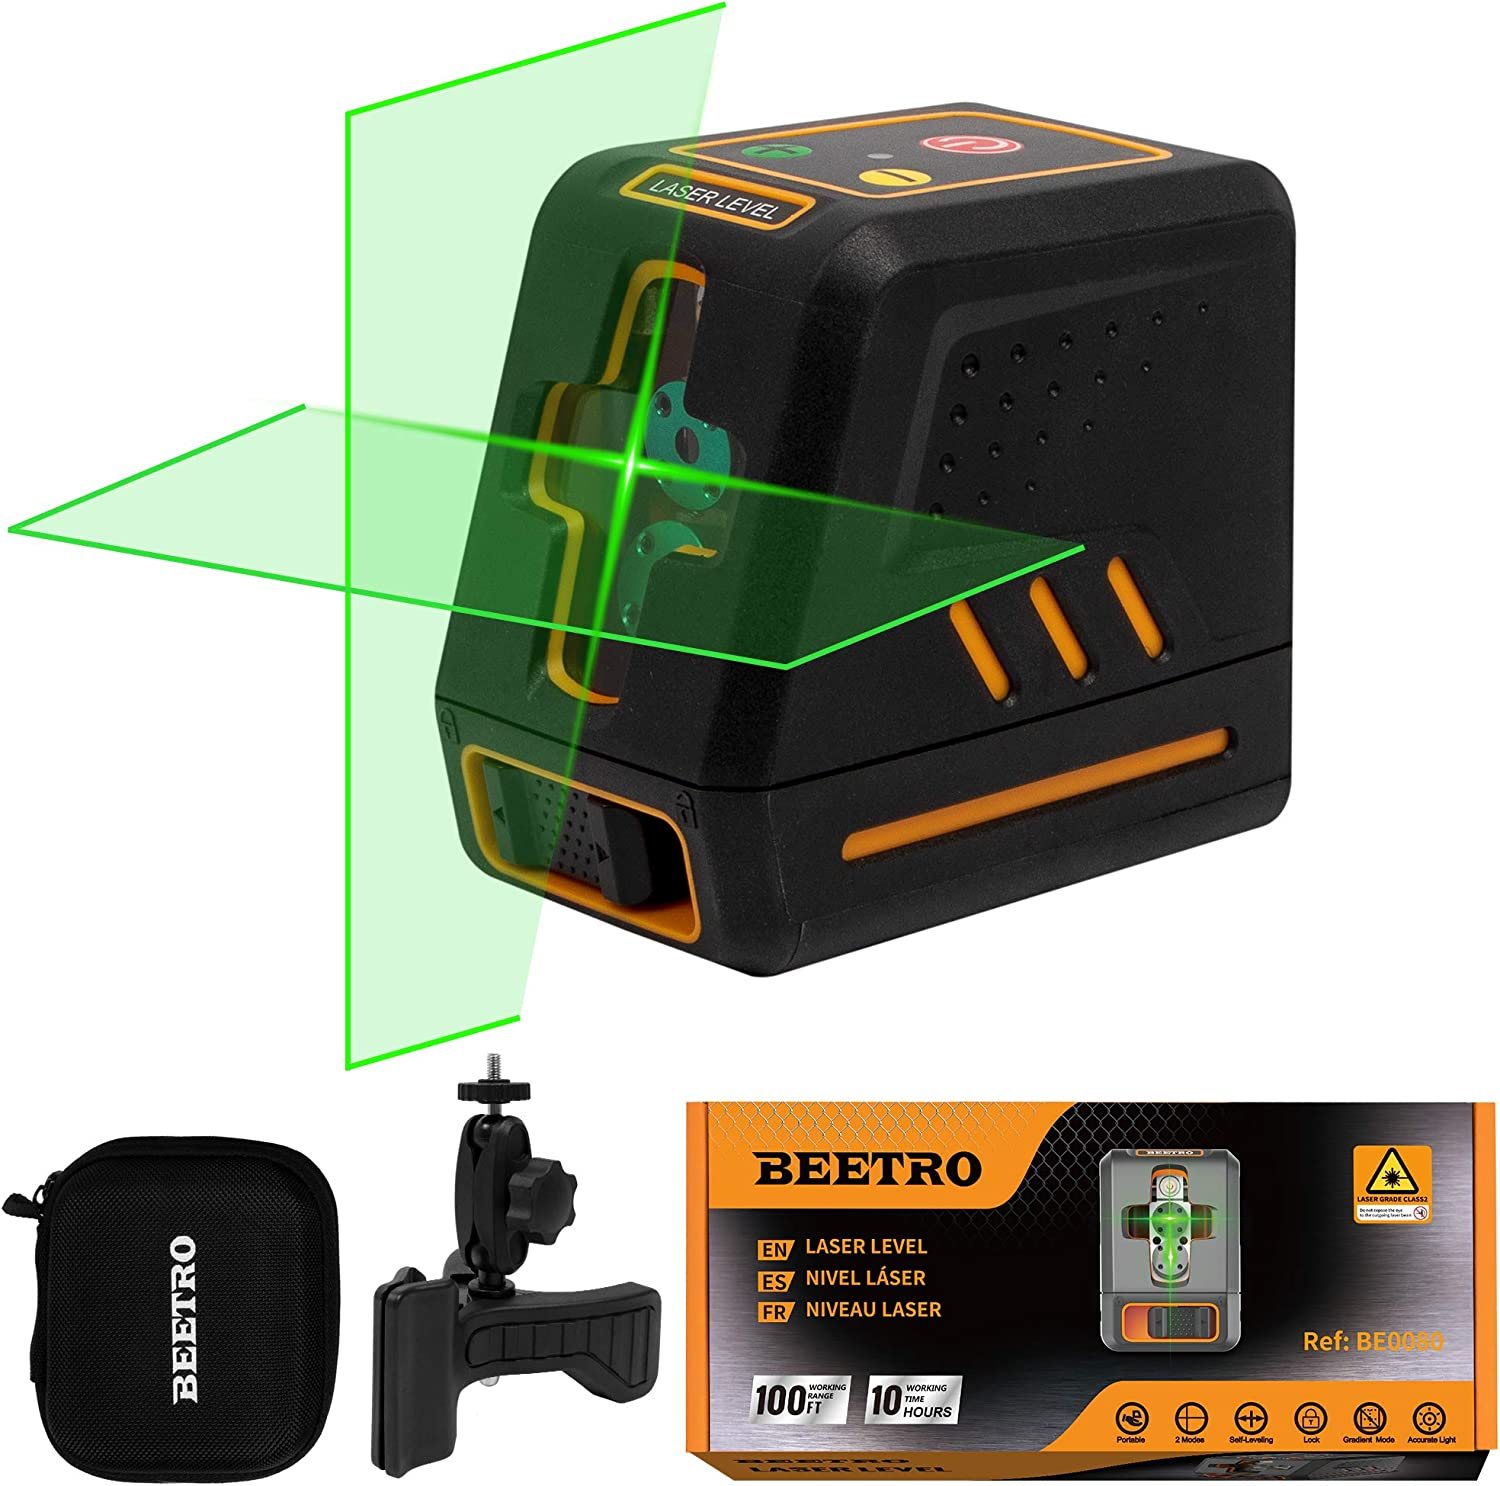 Beetro Laser Level 100ft Green Cross Line Self Leveling for Construction, Picture Hanging, Home Renovation, with Horizontal and Vertical Line, 4 AA Batteries BE0080